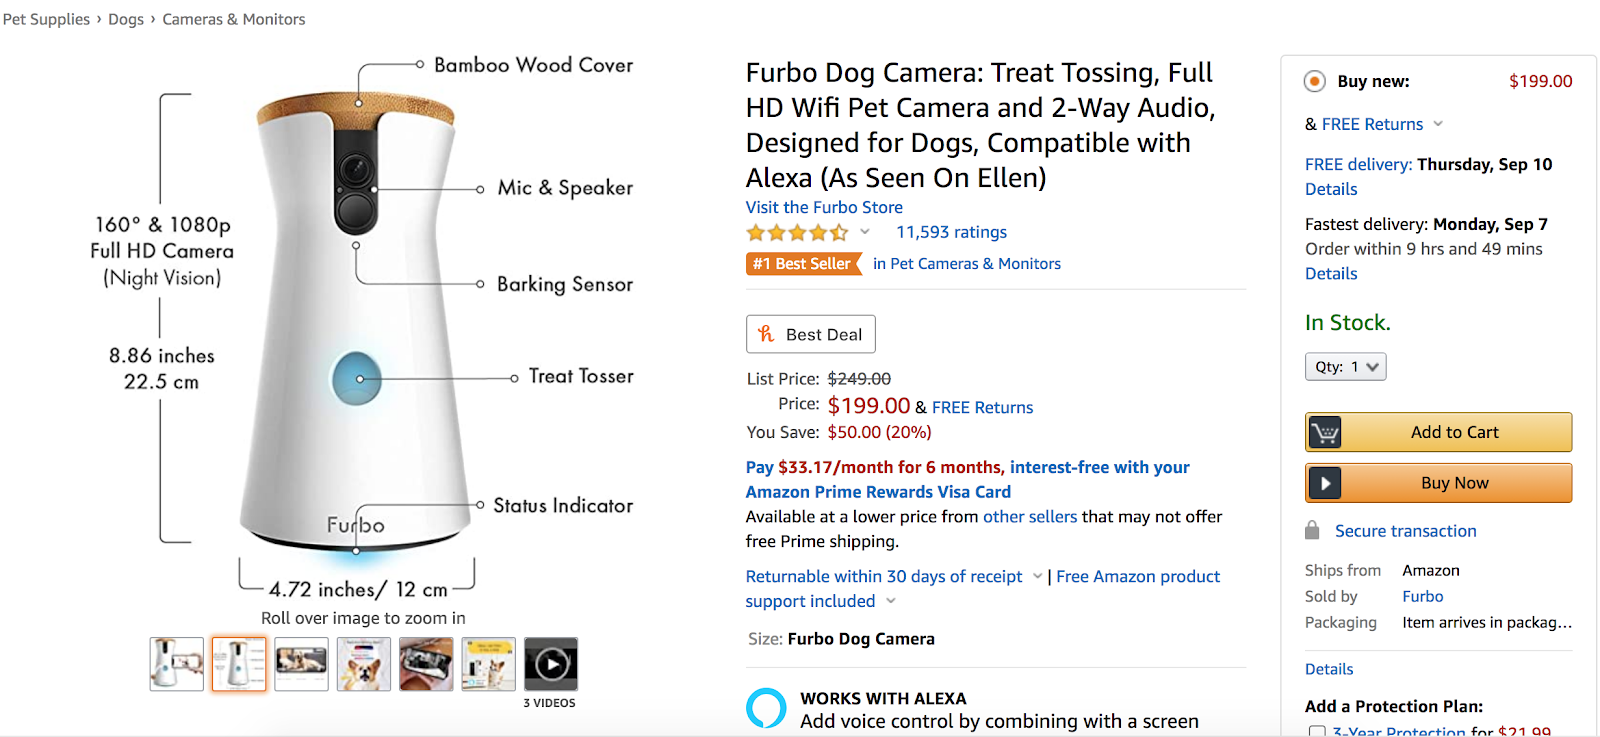 Furbo Dog Camera Amazon listing